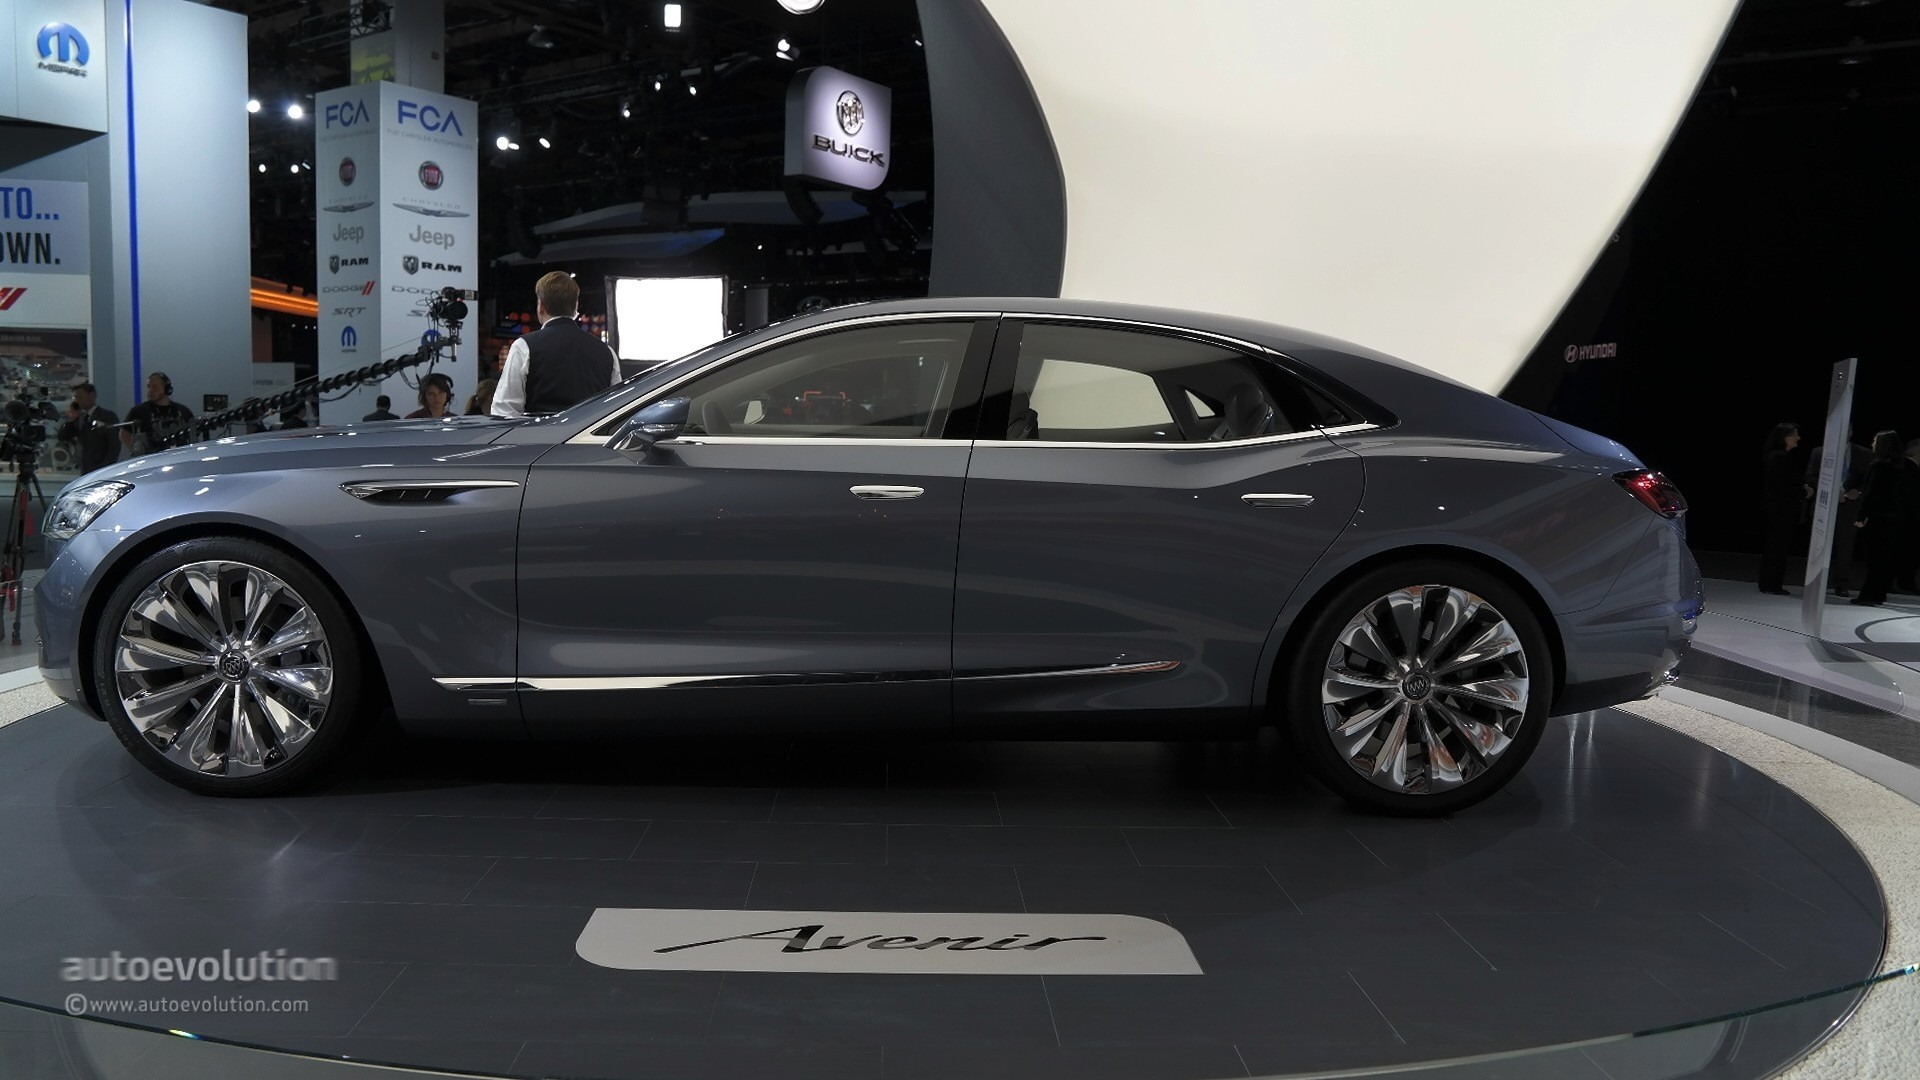 Buick Avenir Sub Brand Follows In The Footsteps Of Ford